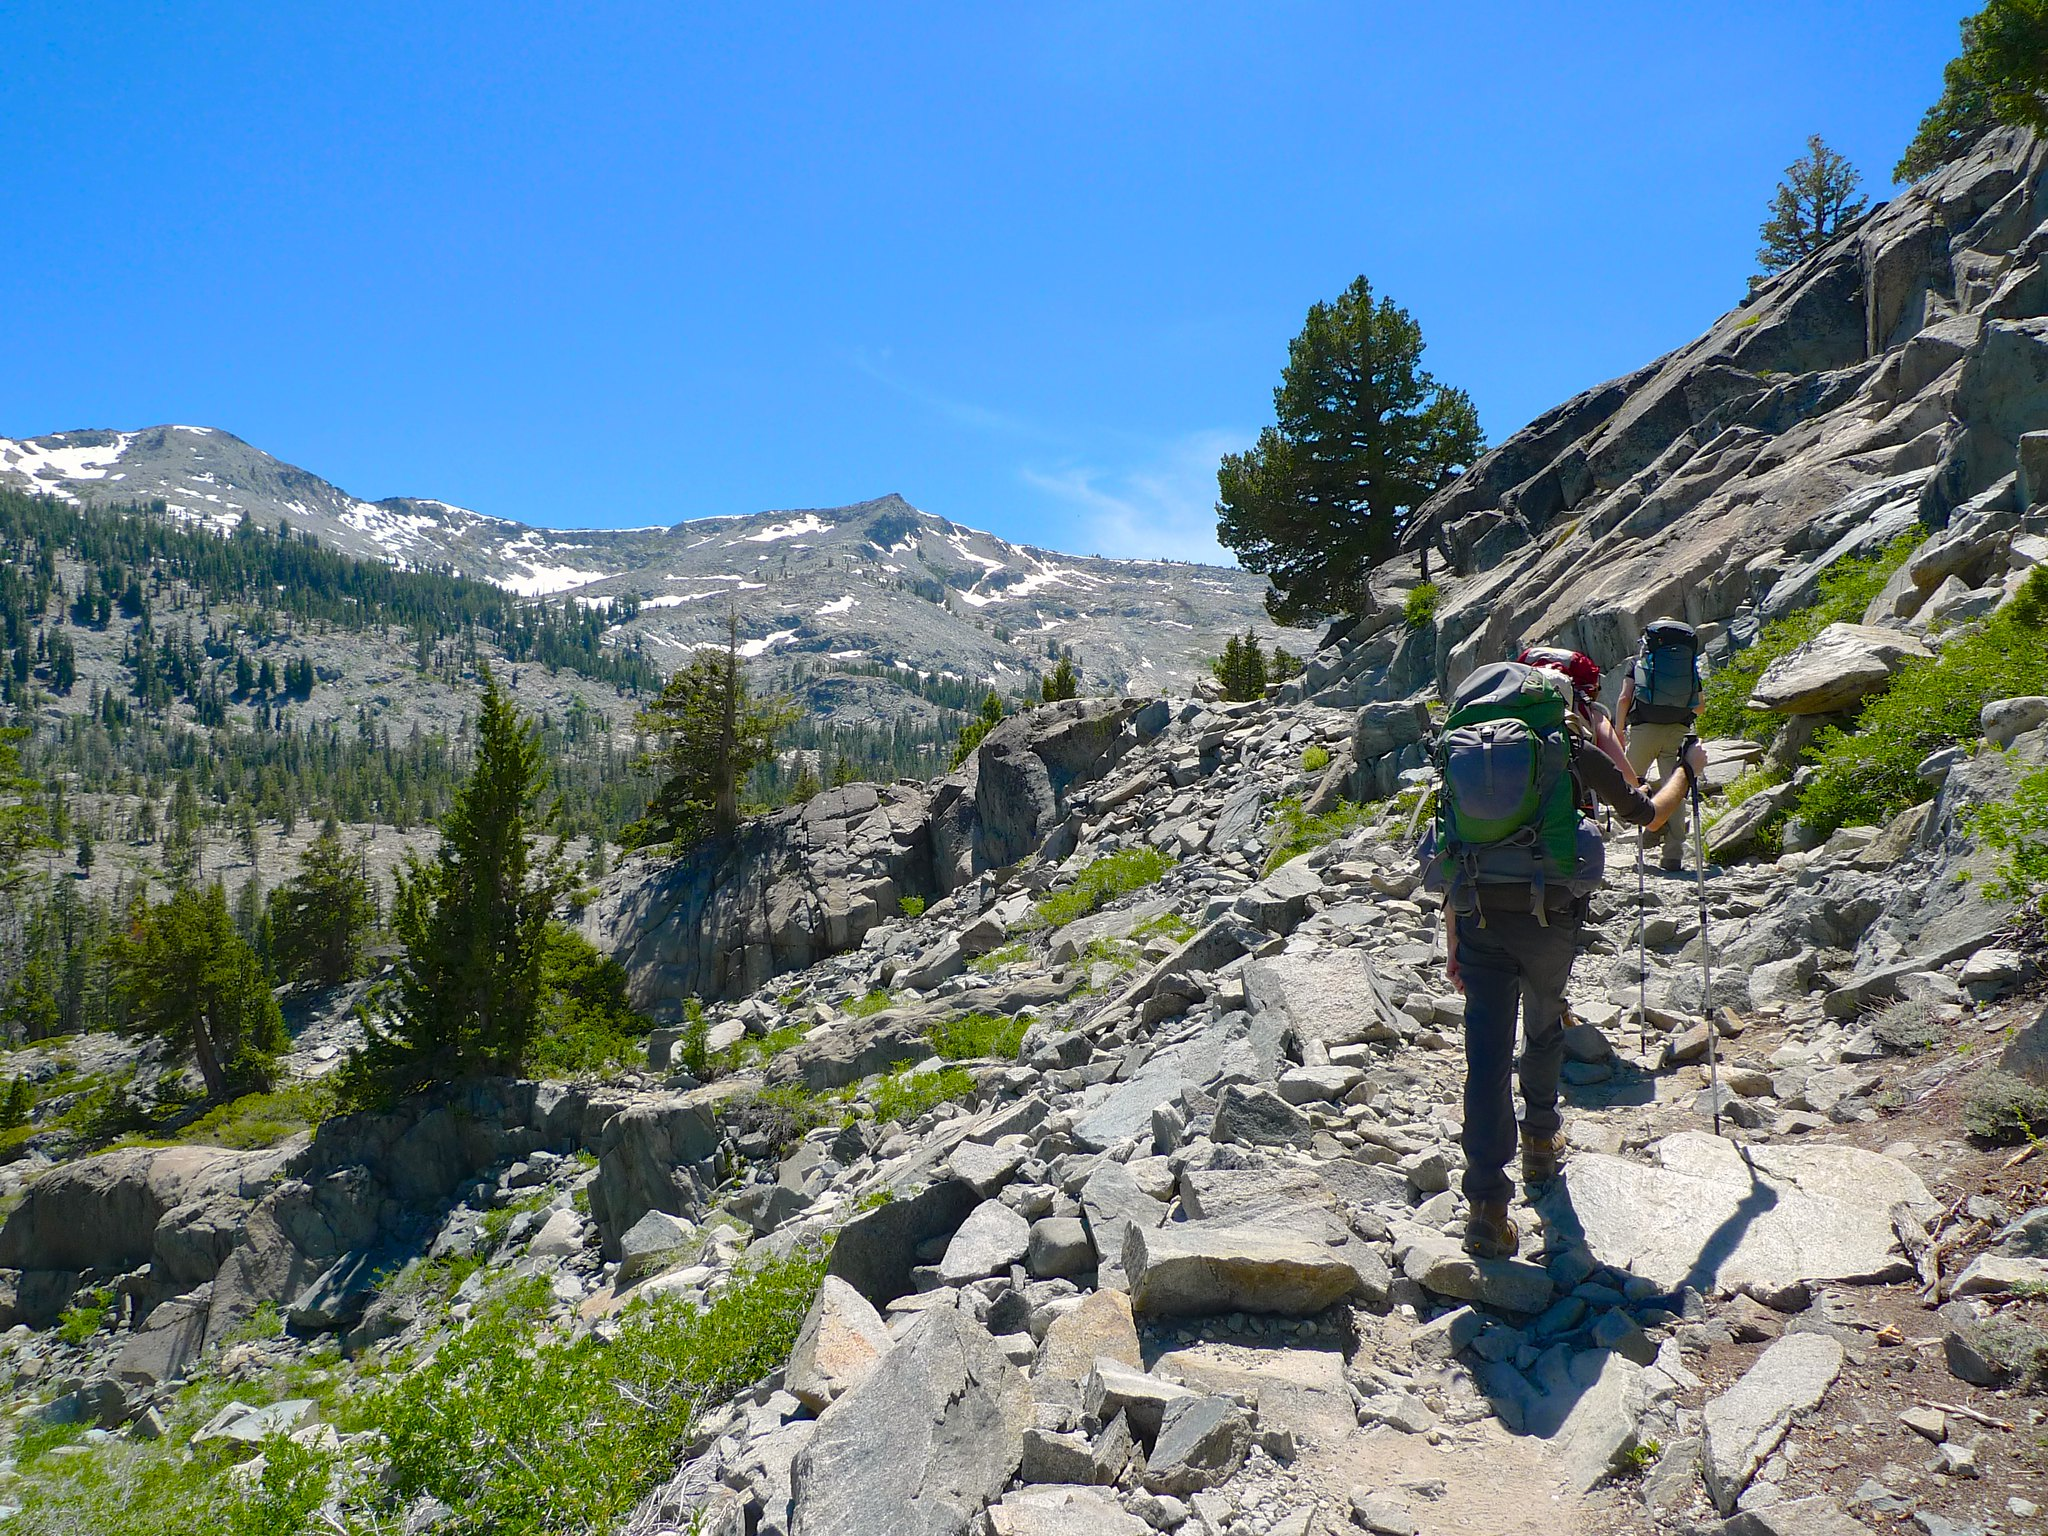 Starting up the PCT towards Lake Aloha